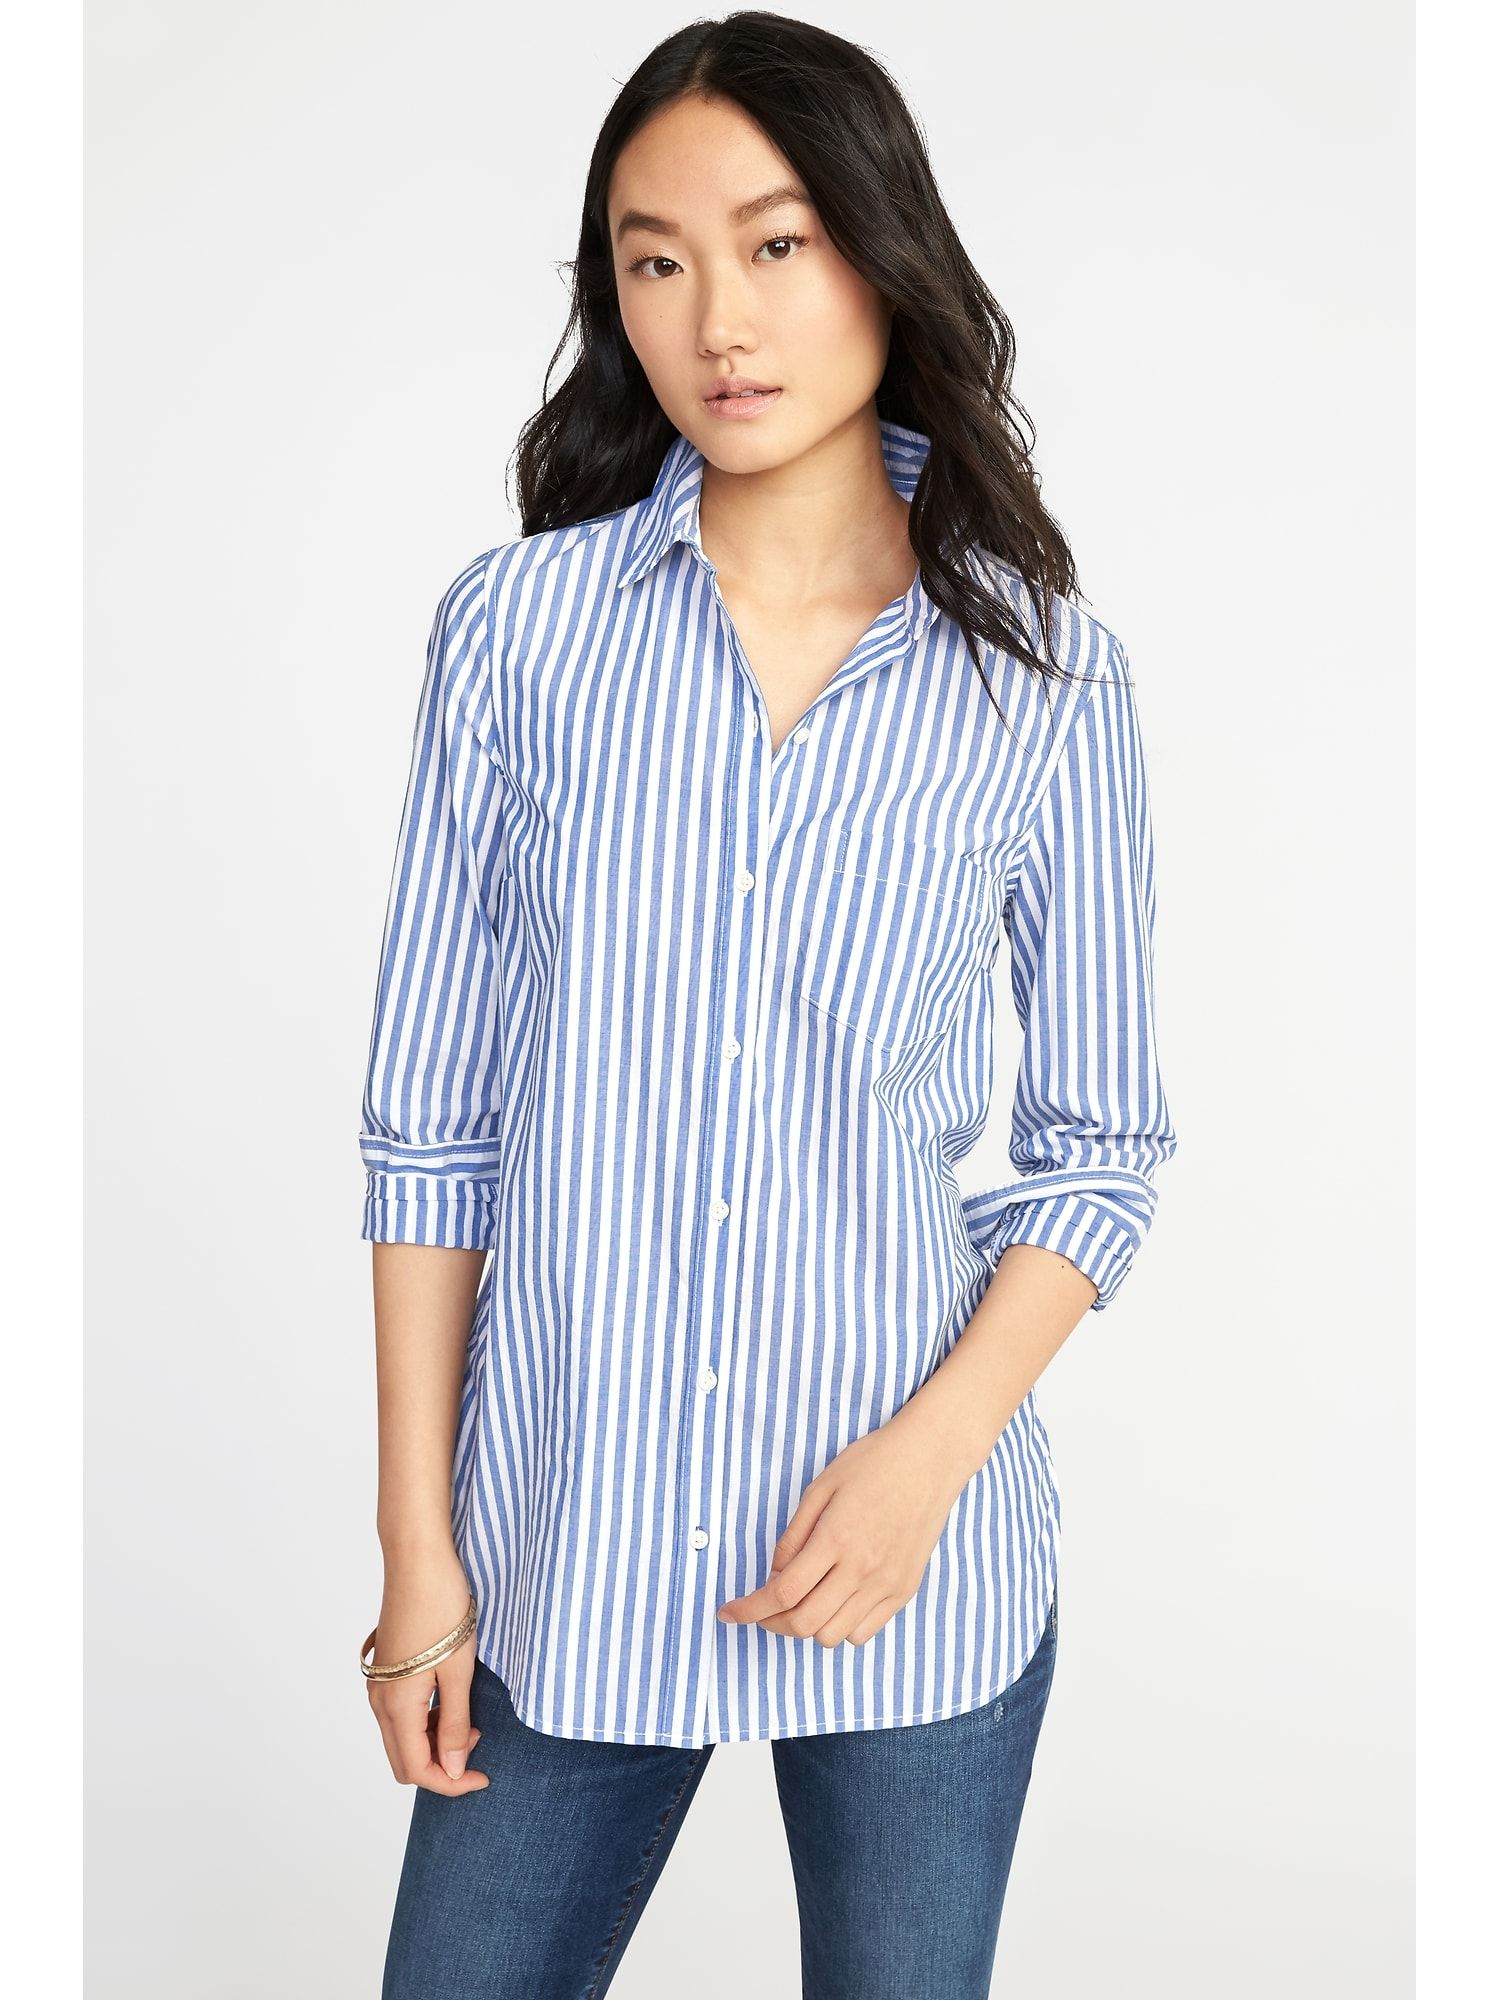 a5120cdf0805c7 Classic Relaxed Striped Tunic for Women | Style | Blouses for women ...